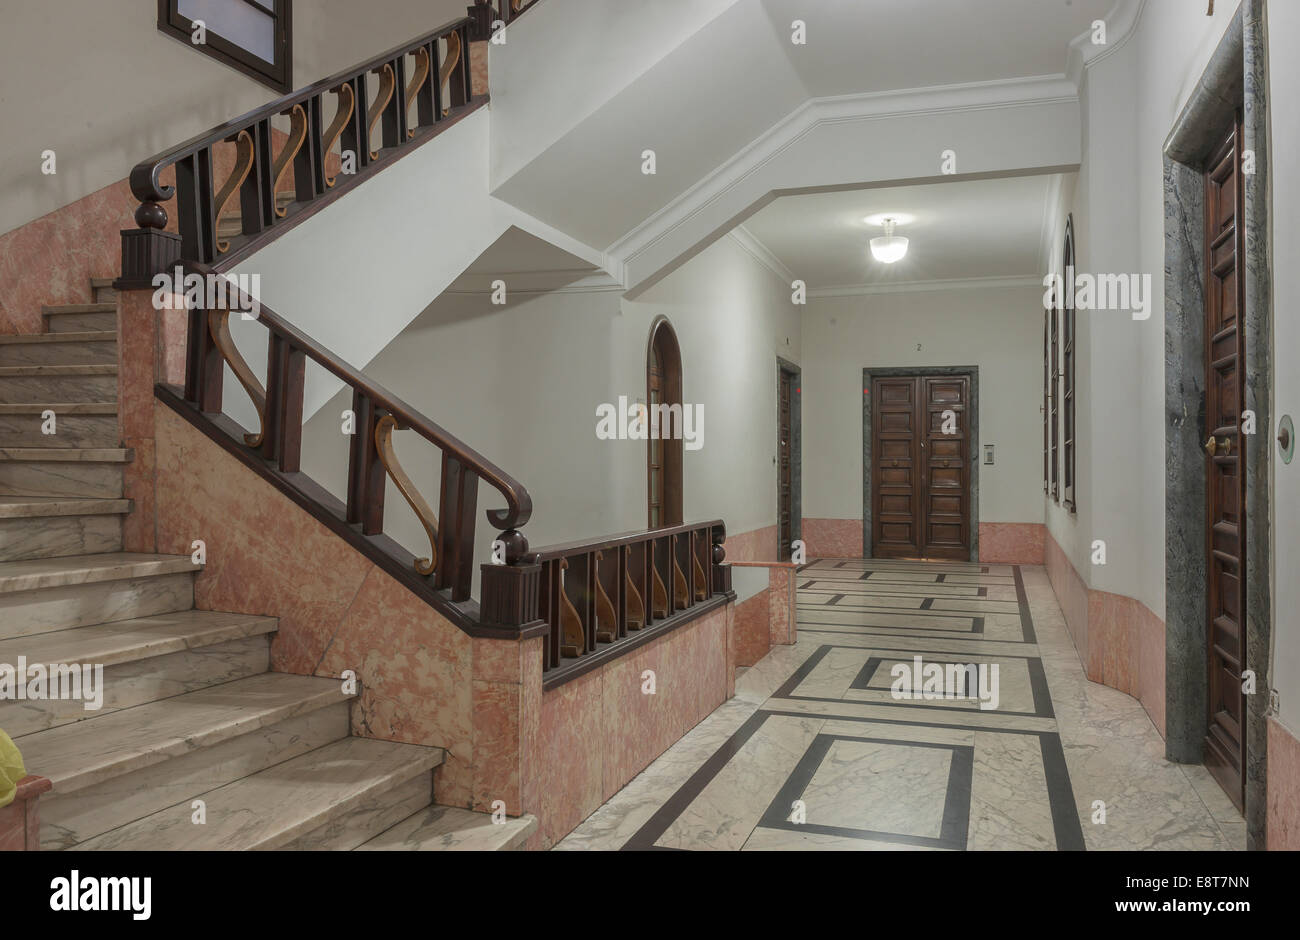 Hallway, interior design of the 30s, architecture in Italian fascism under Mussolini, Piazza della Vittoria, Genoa, - Stock Image